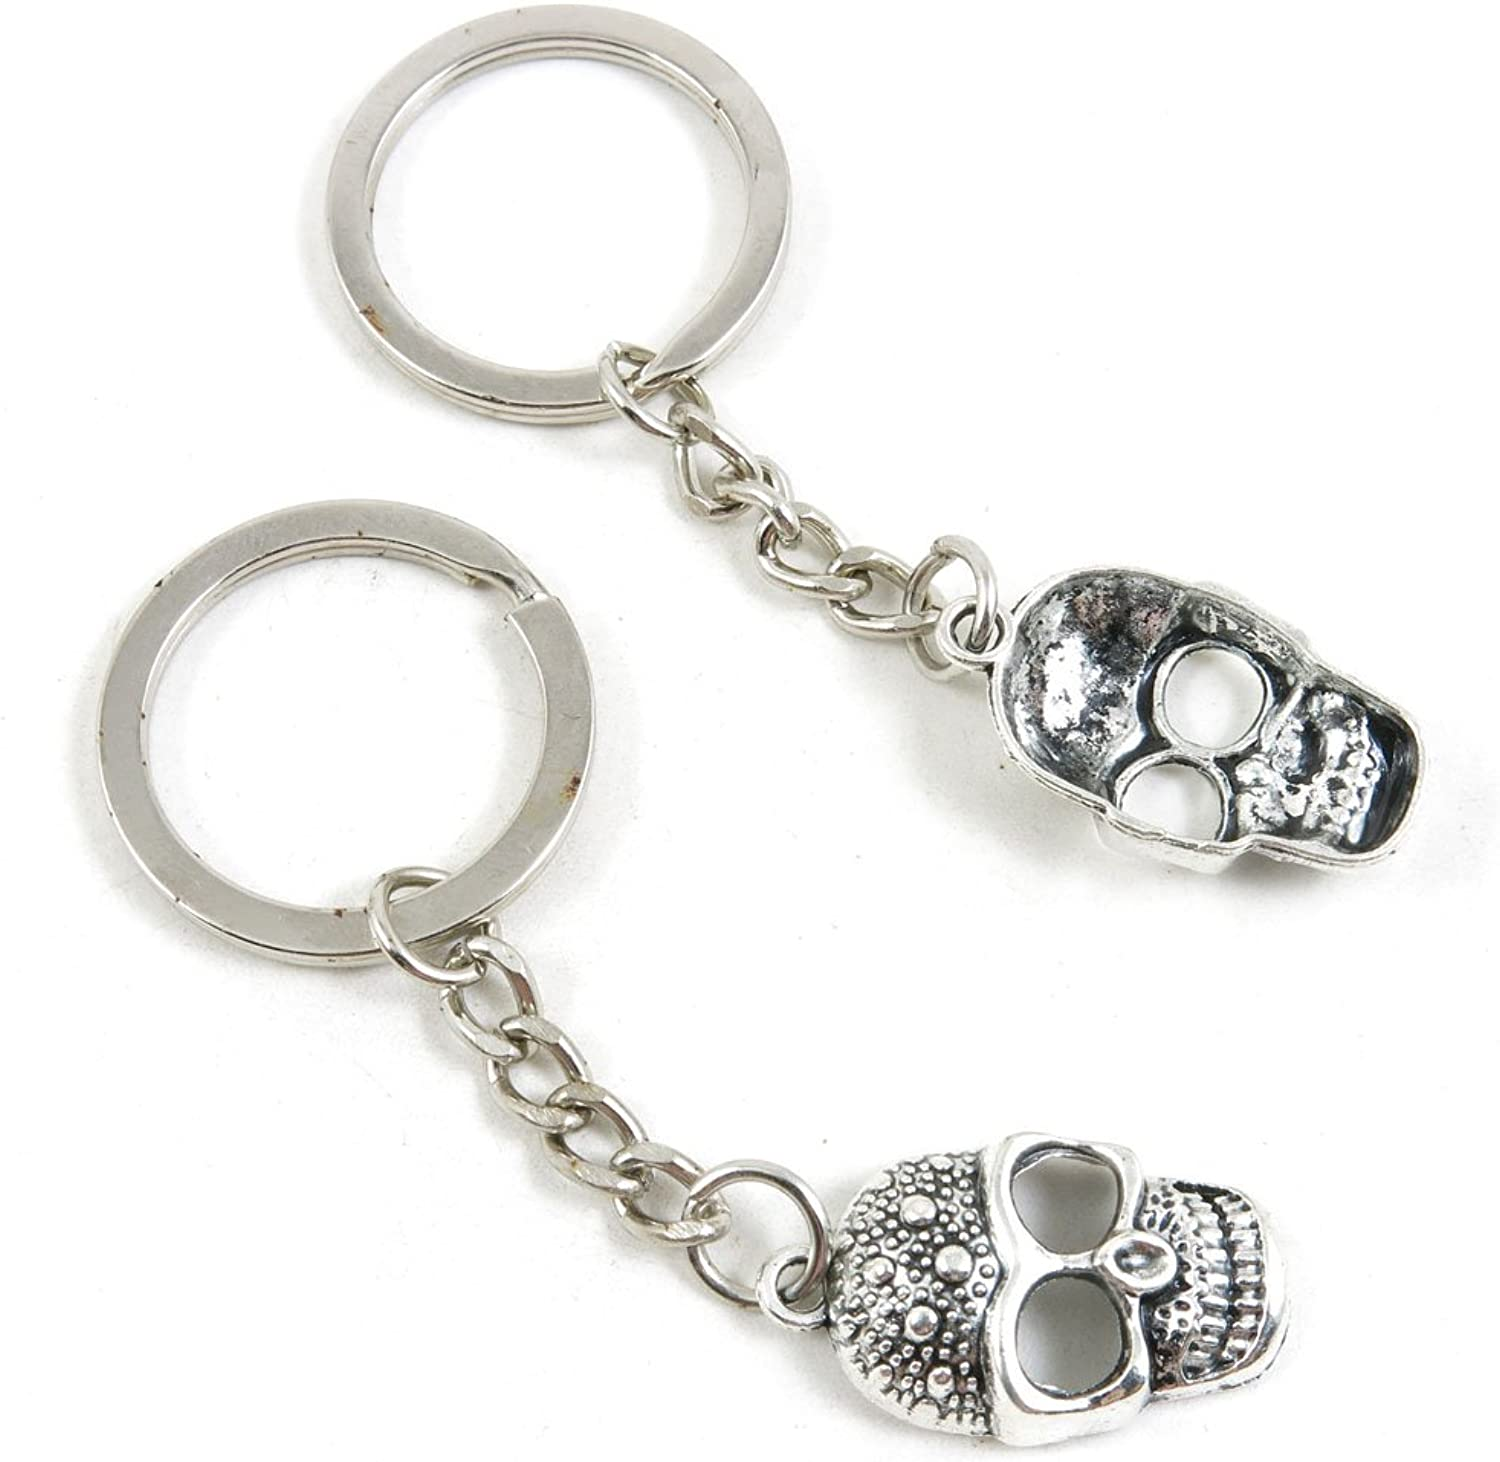 100 Pieces Keychain Keyring Door Car Key Chain Ring Tag Charms Bulk Supply Jewelry Making Clasp Findings S3GD7F Skull